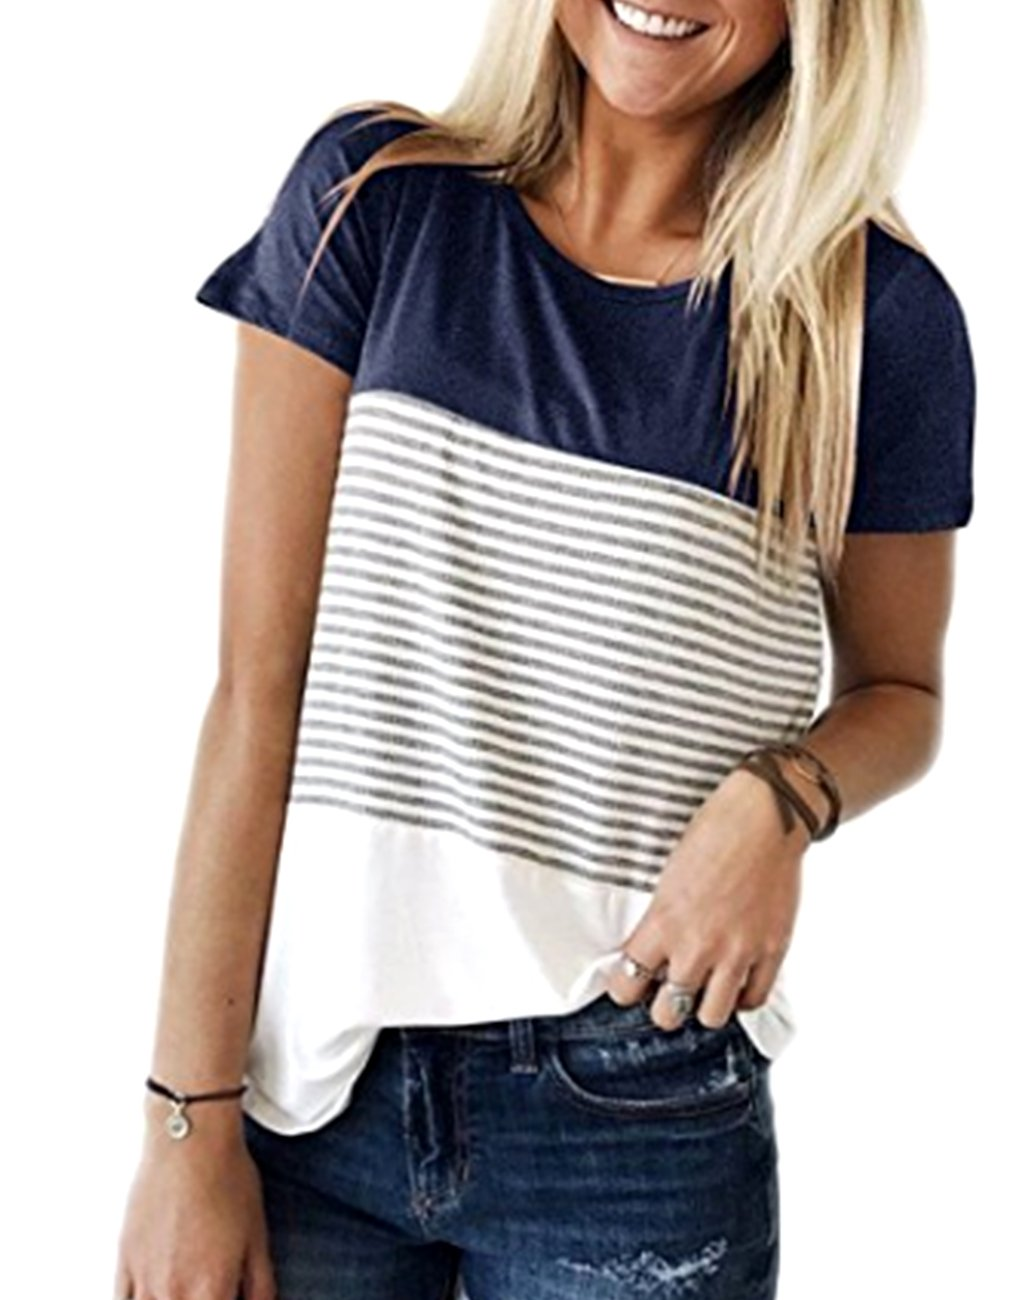 Miskely Women's Summer Short Sleeve Striped Blouse Junior Casual Tunic Tops T-Shirt (Small, Navy Blue) by Miskely (Image #1)